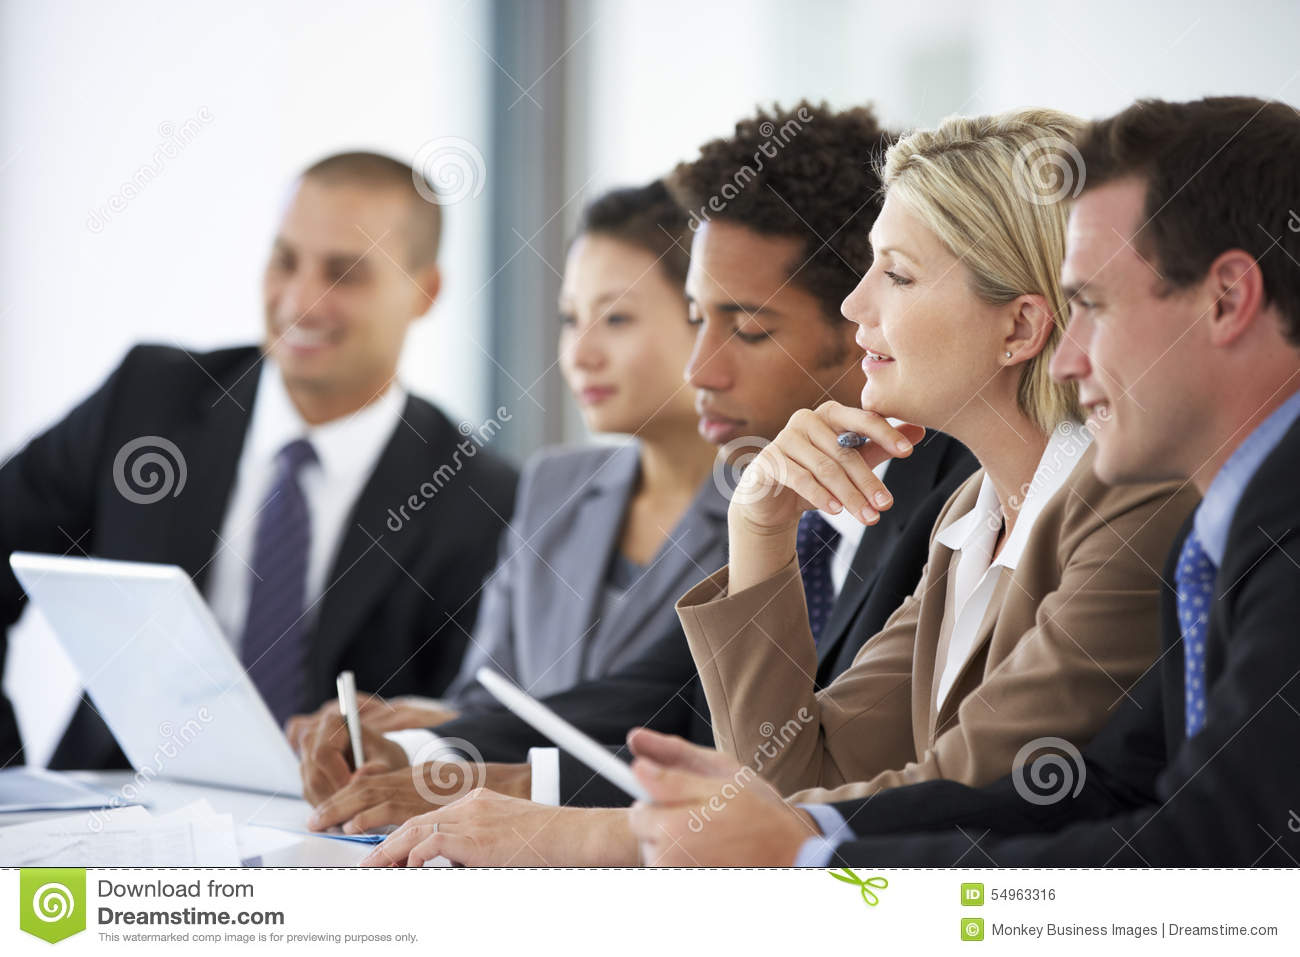 Group Of Business People Listening To Colleague Addressing Office Meeting